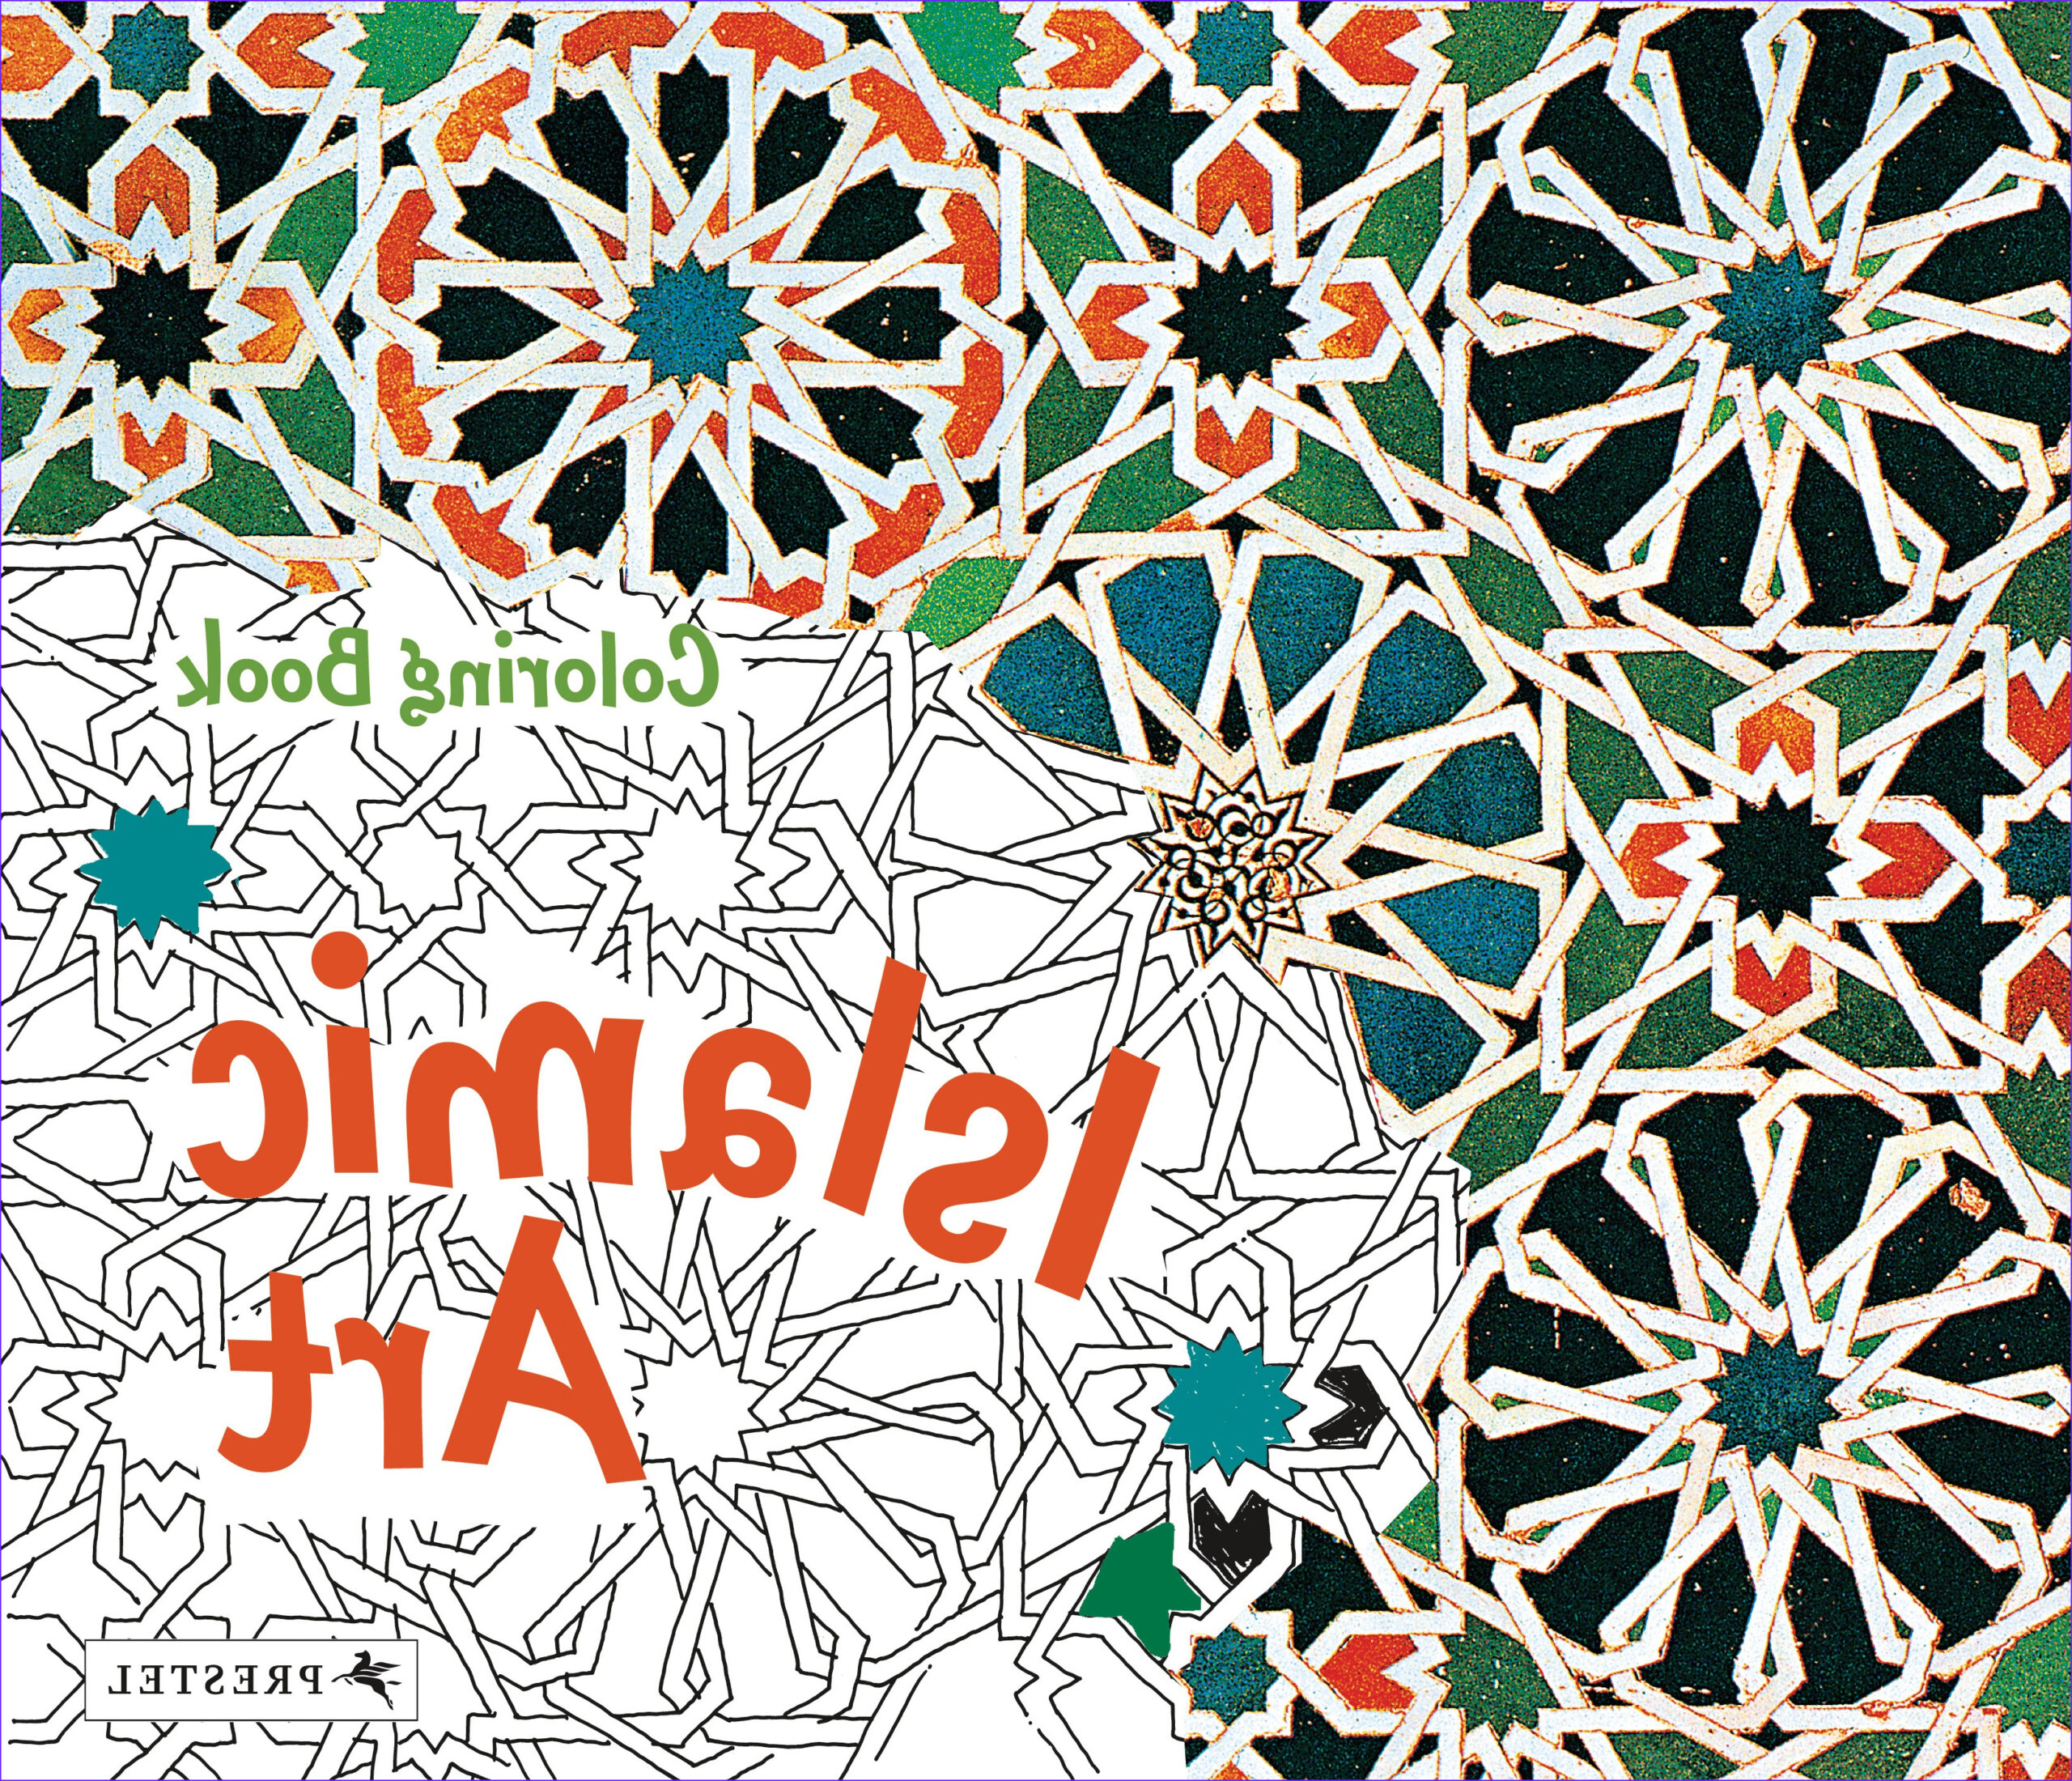 Coloring Art Books Inspirational Photos Annette Roeder Coloring Book islamic Art Prestel